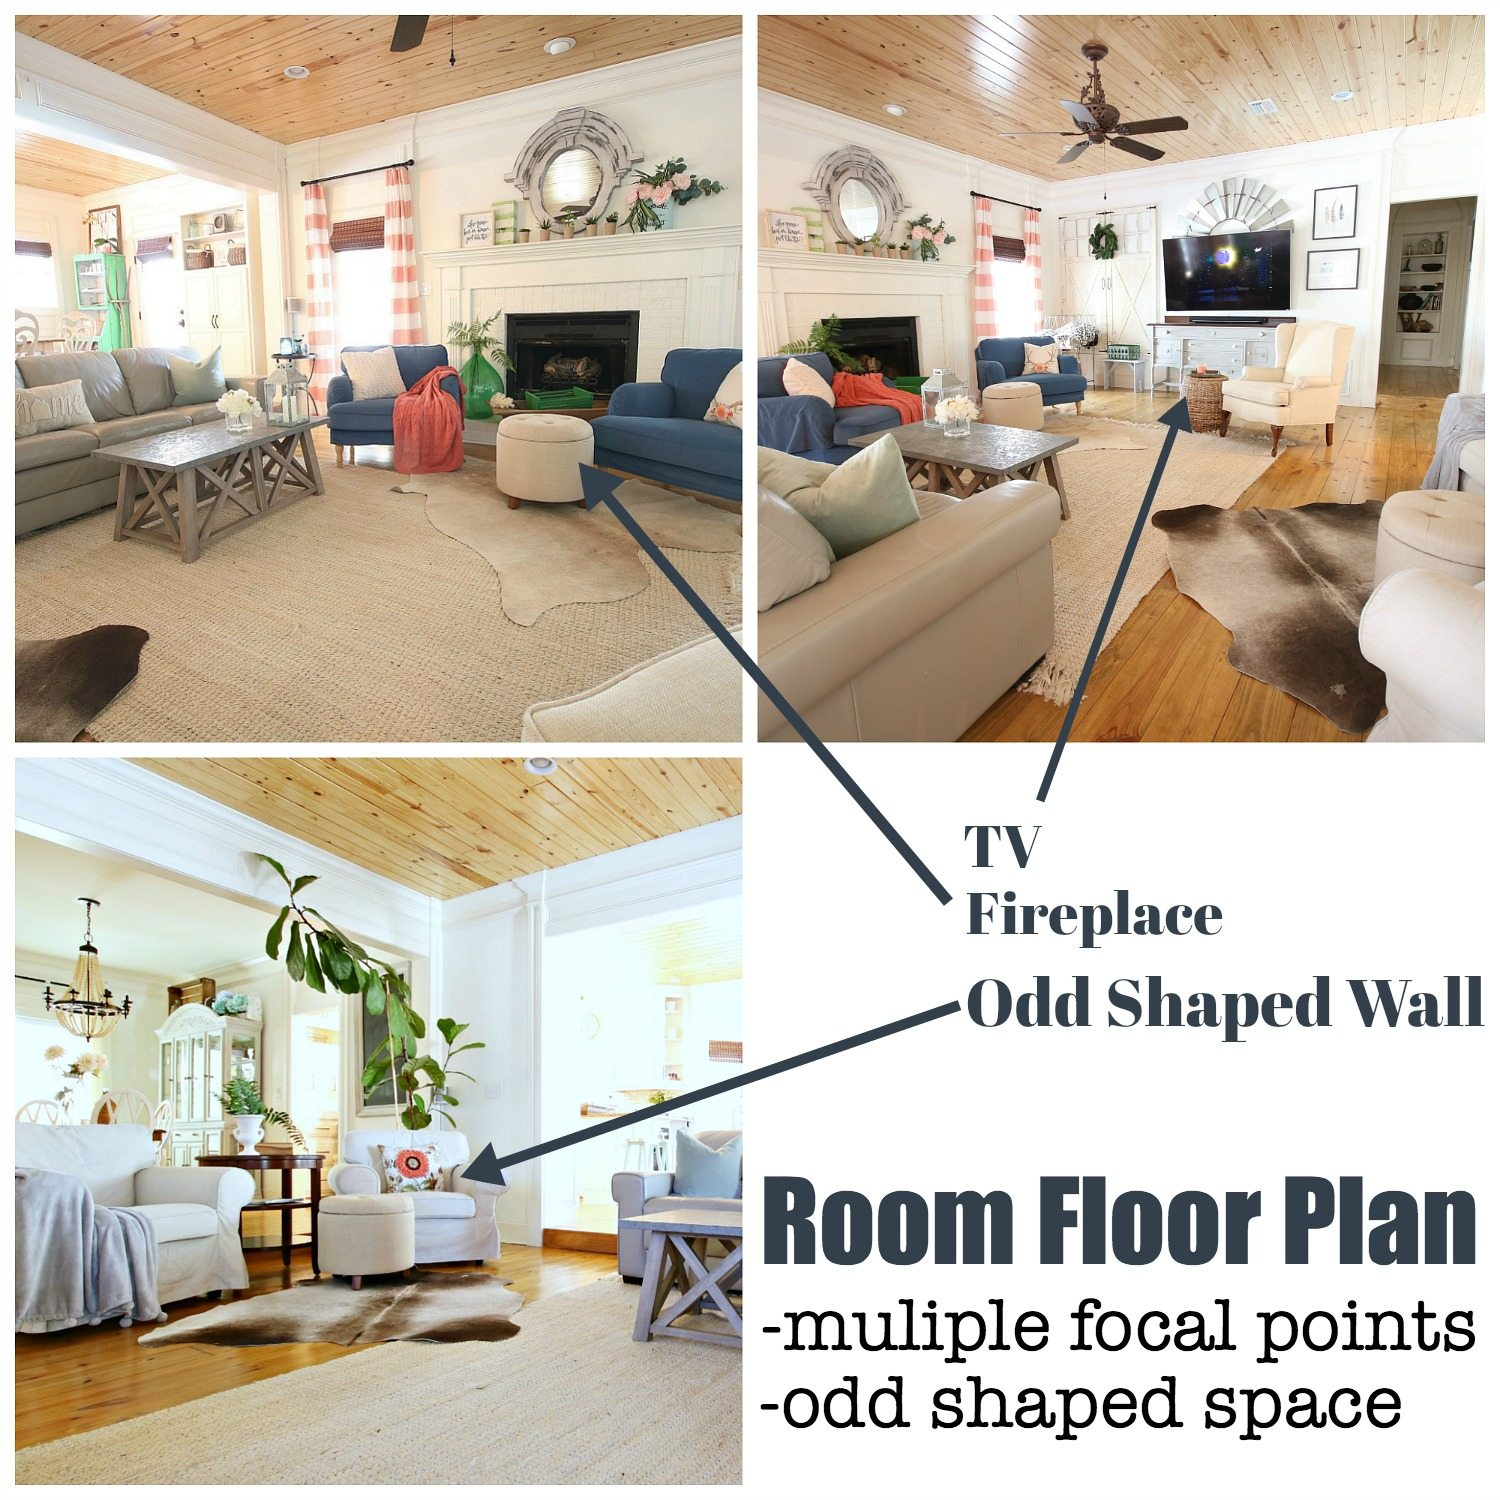 Room floor plan for odd shaped space